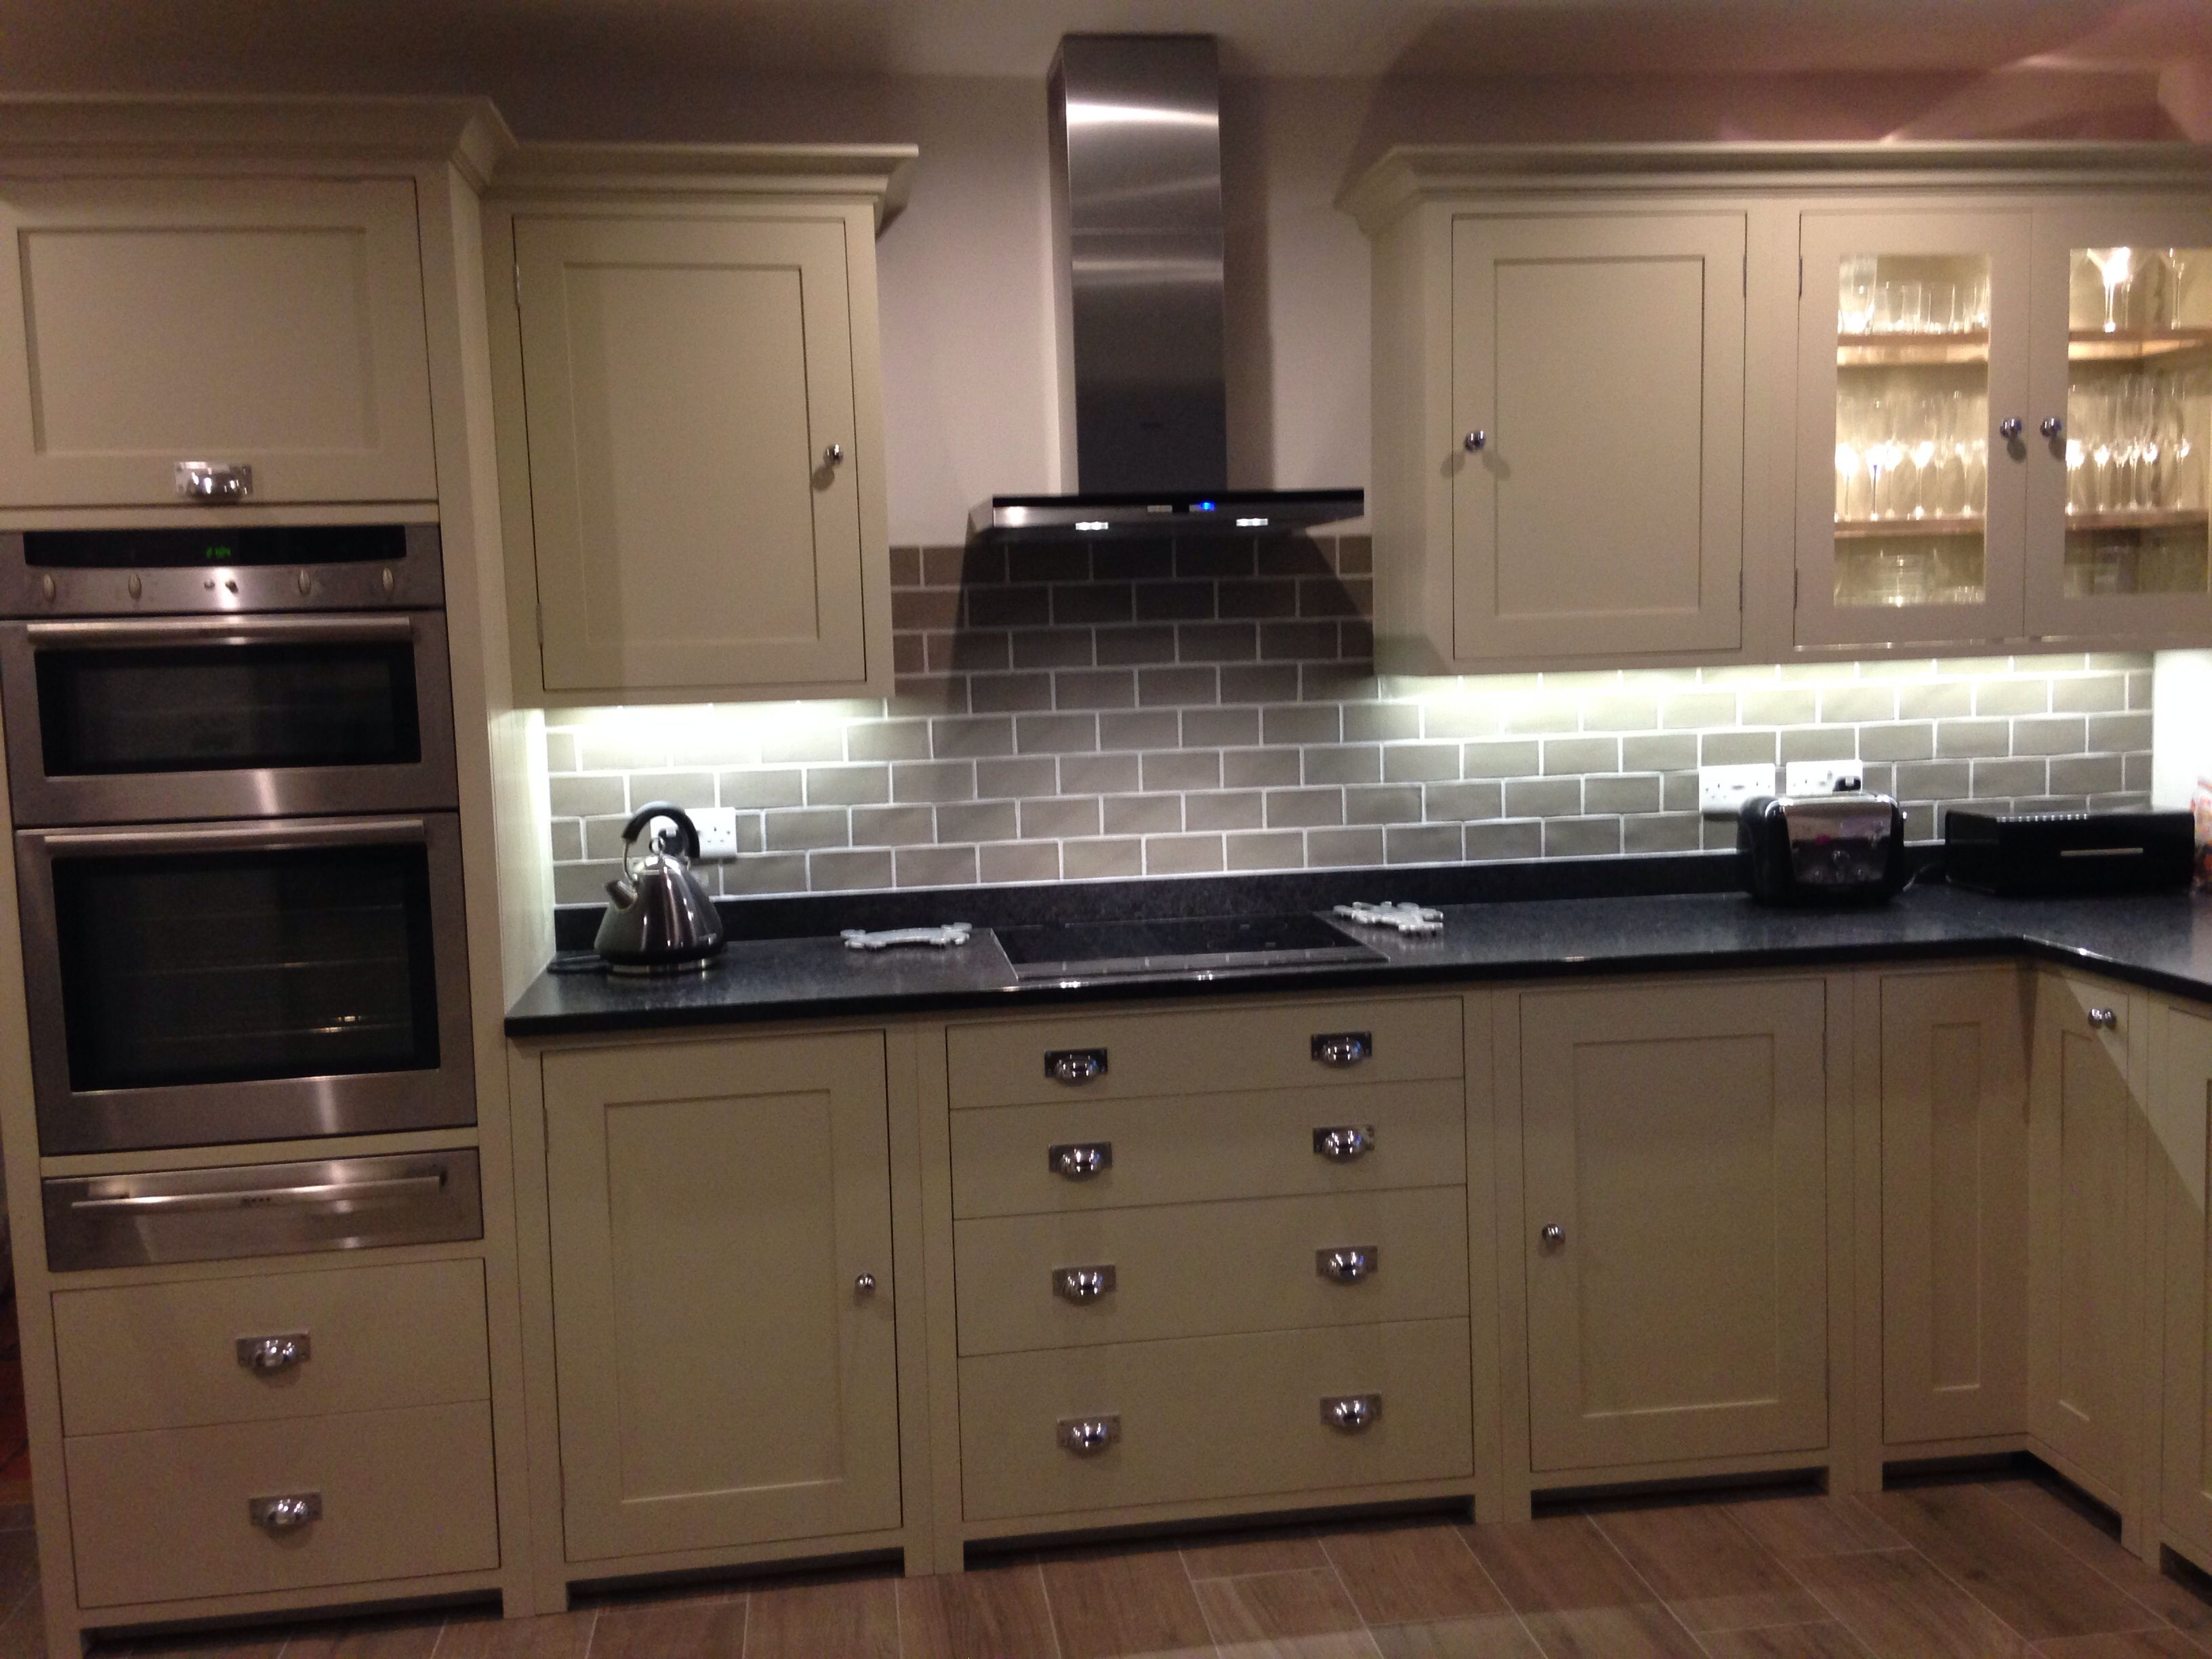 neptune suffolk kitchen home decorating pinterest kitchens and house. Black Bedroom Furniture Sets. Home Design Ideas